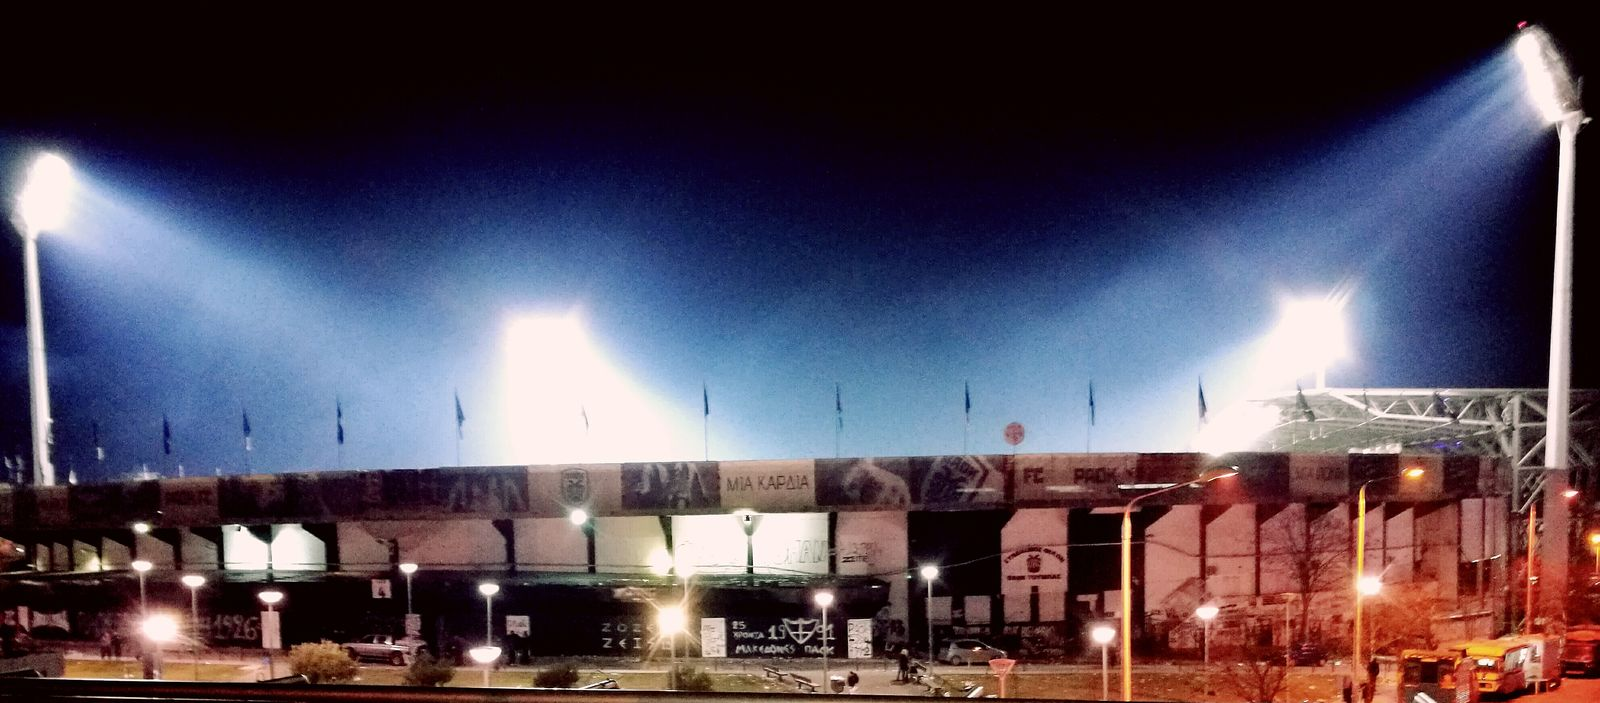 Paokfc Ourhome Bestfans 1926 Gate4